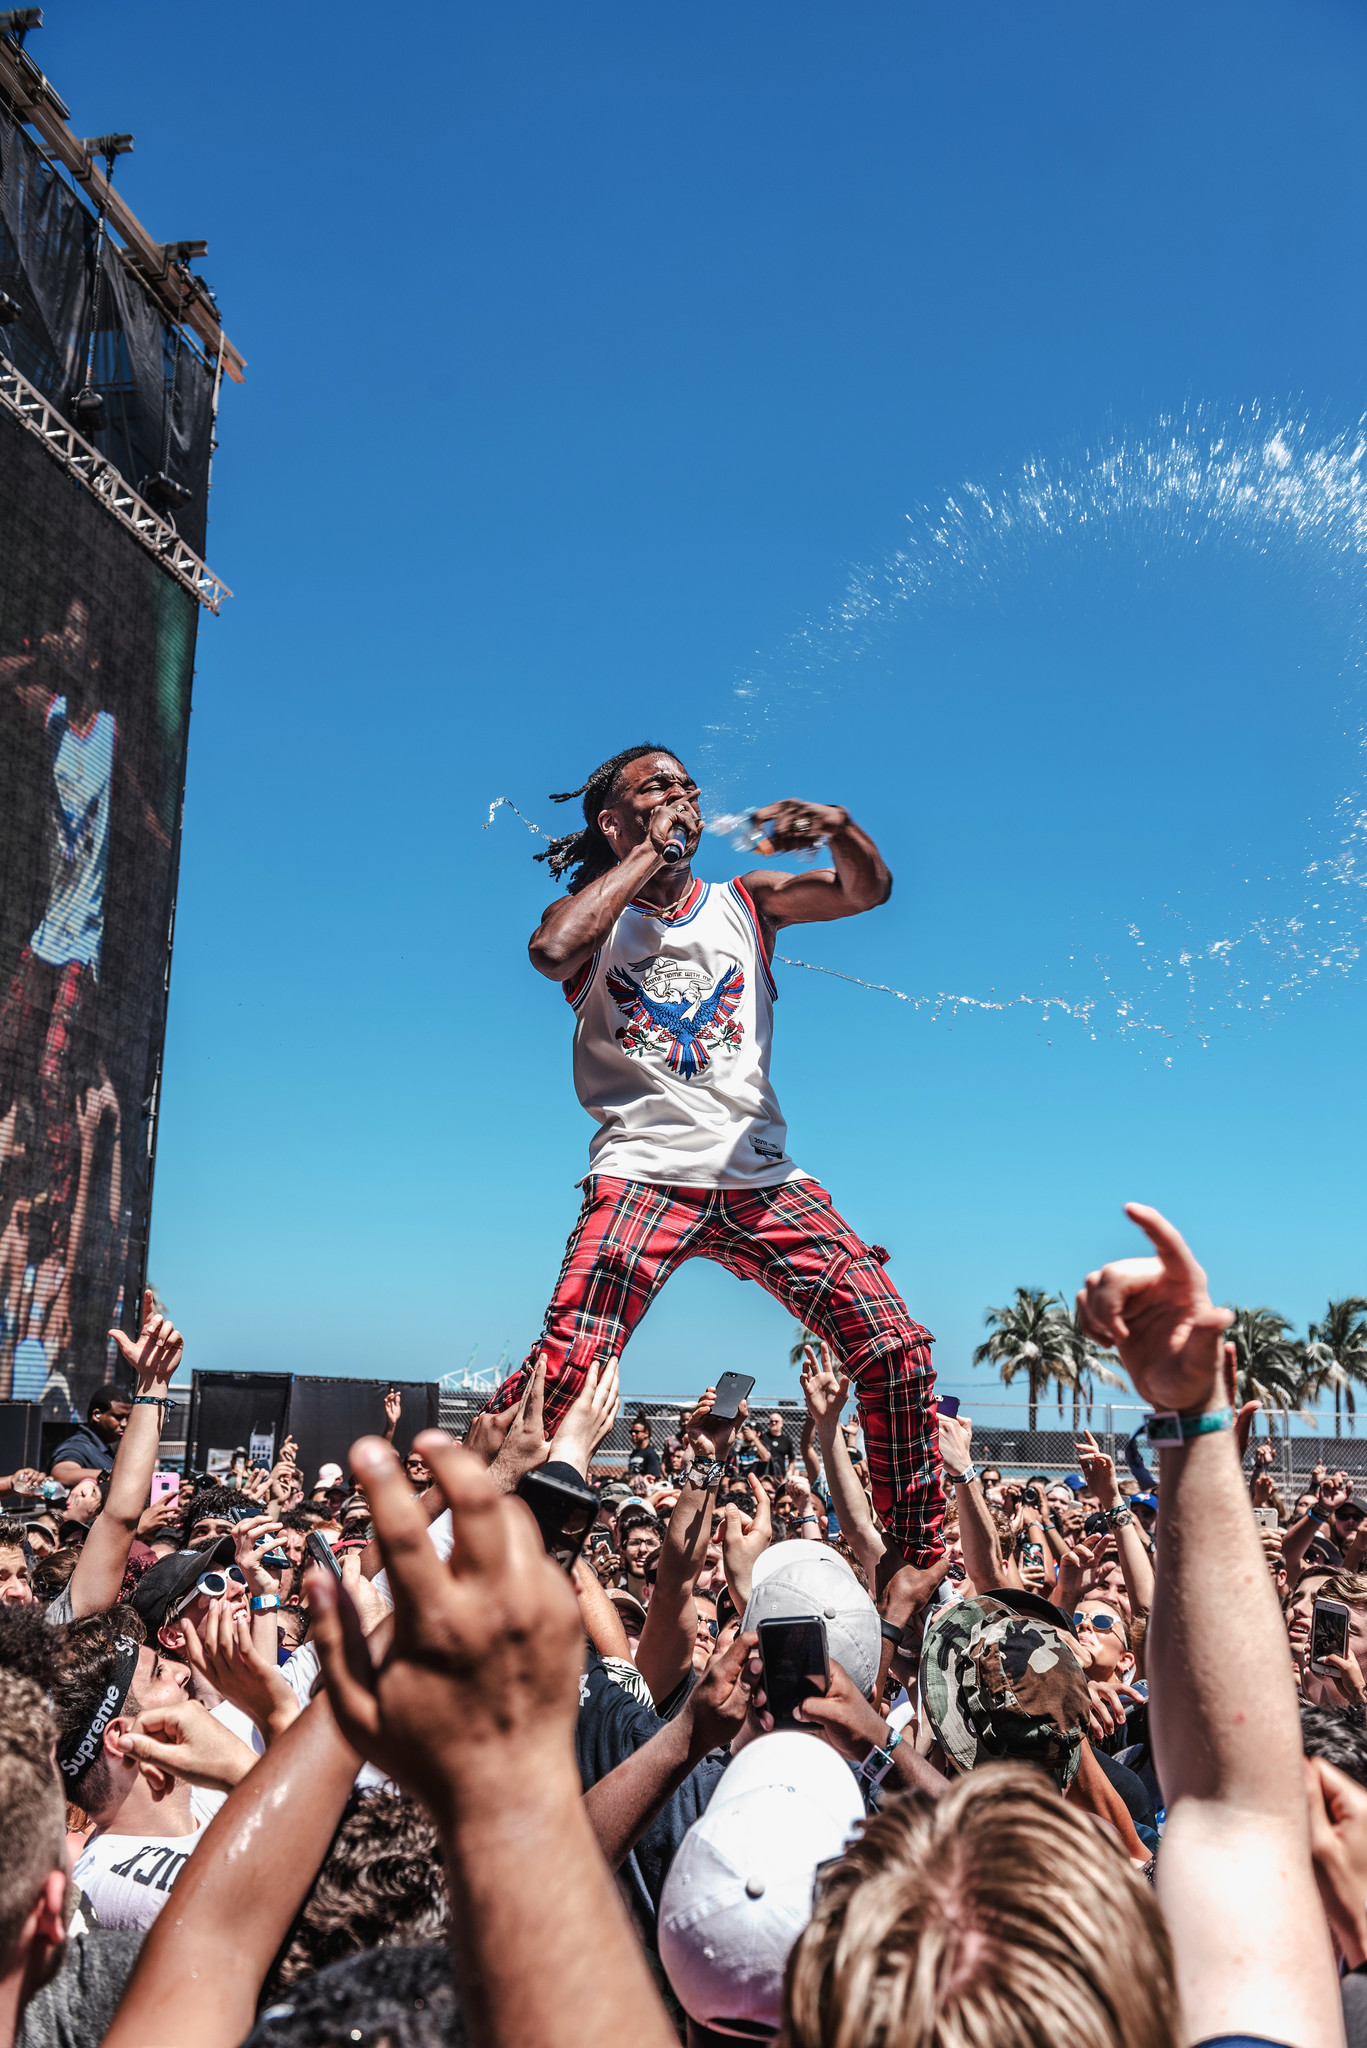 Jazz Cartier in performance at the Miami Rolling Loud festival. Aaron Ricketts/Rolling Loud